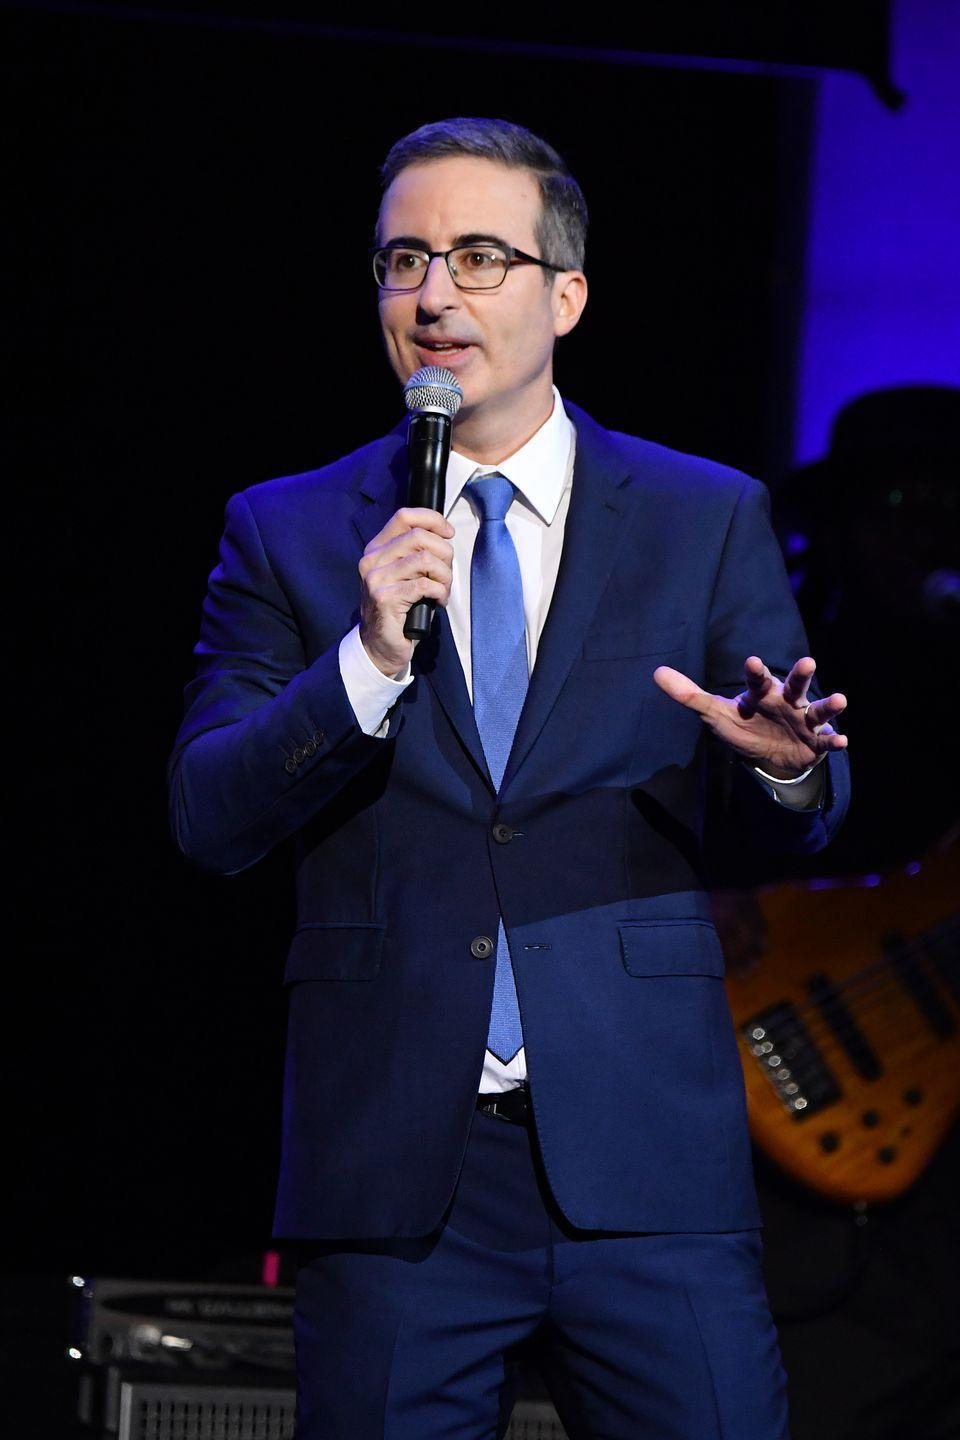 """<p>The late night <a href=""""https://www.menshealth.com/entertainment/a32800925/last-week-tonight-john-oliver-defund-the-police/"""" rel=""""nofollow noopener"""" target=""""_blank"""" data-ylk=""""slk:host"""" class=""""link rapid-noclick-resp"""">host</a>'s glasses are almost as iconic as his deep dives into important issues that plague American society. </p>"""